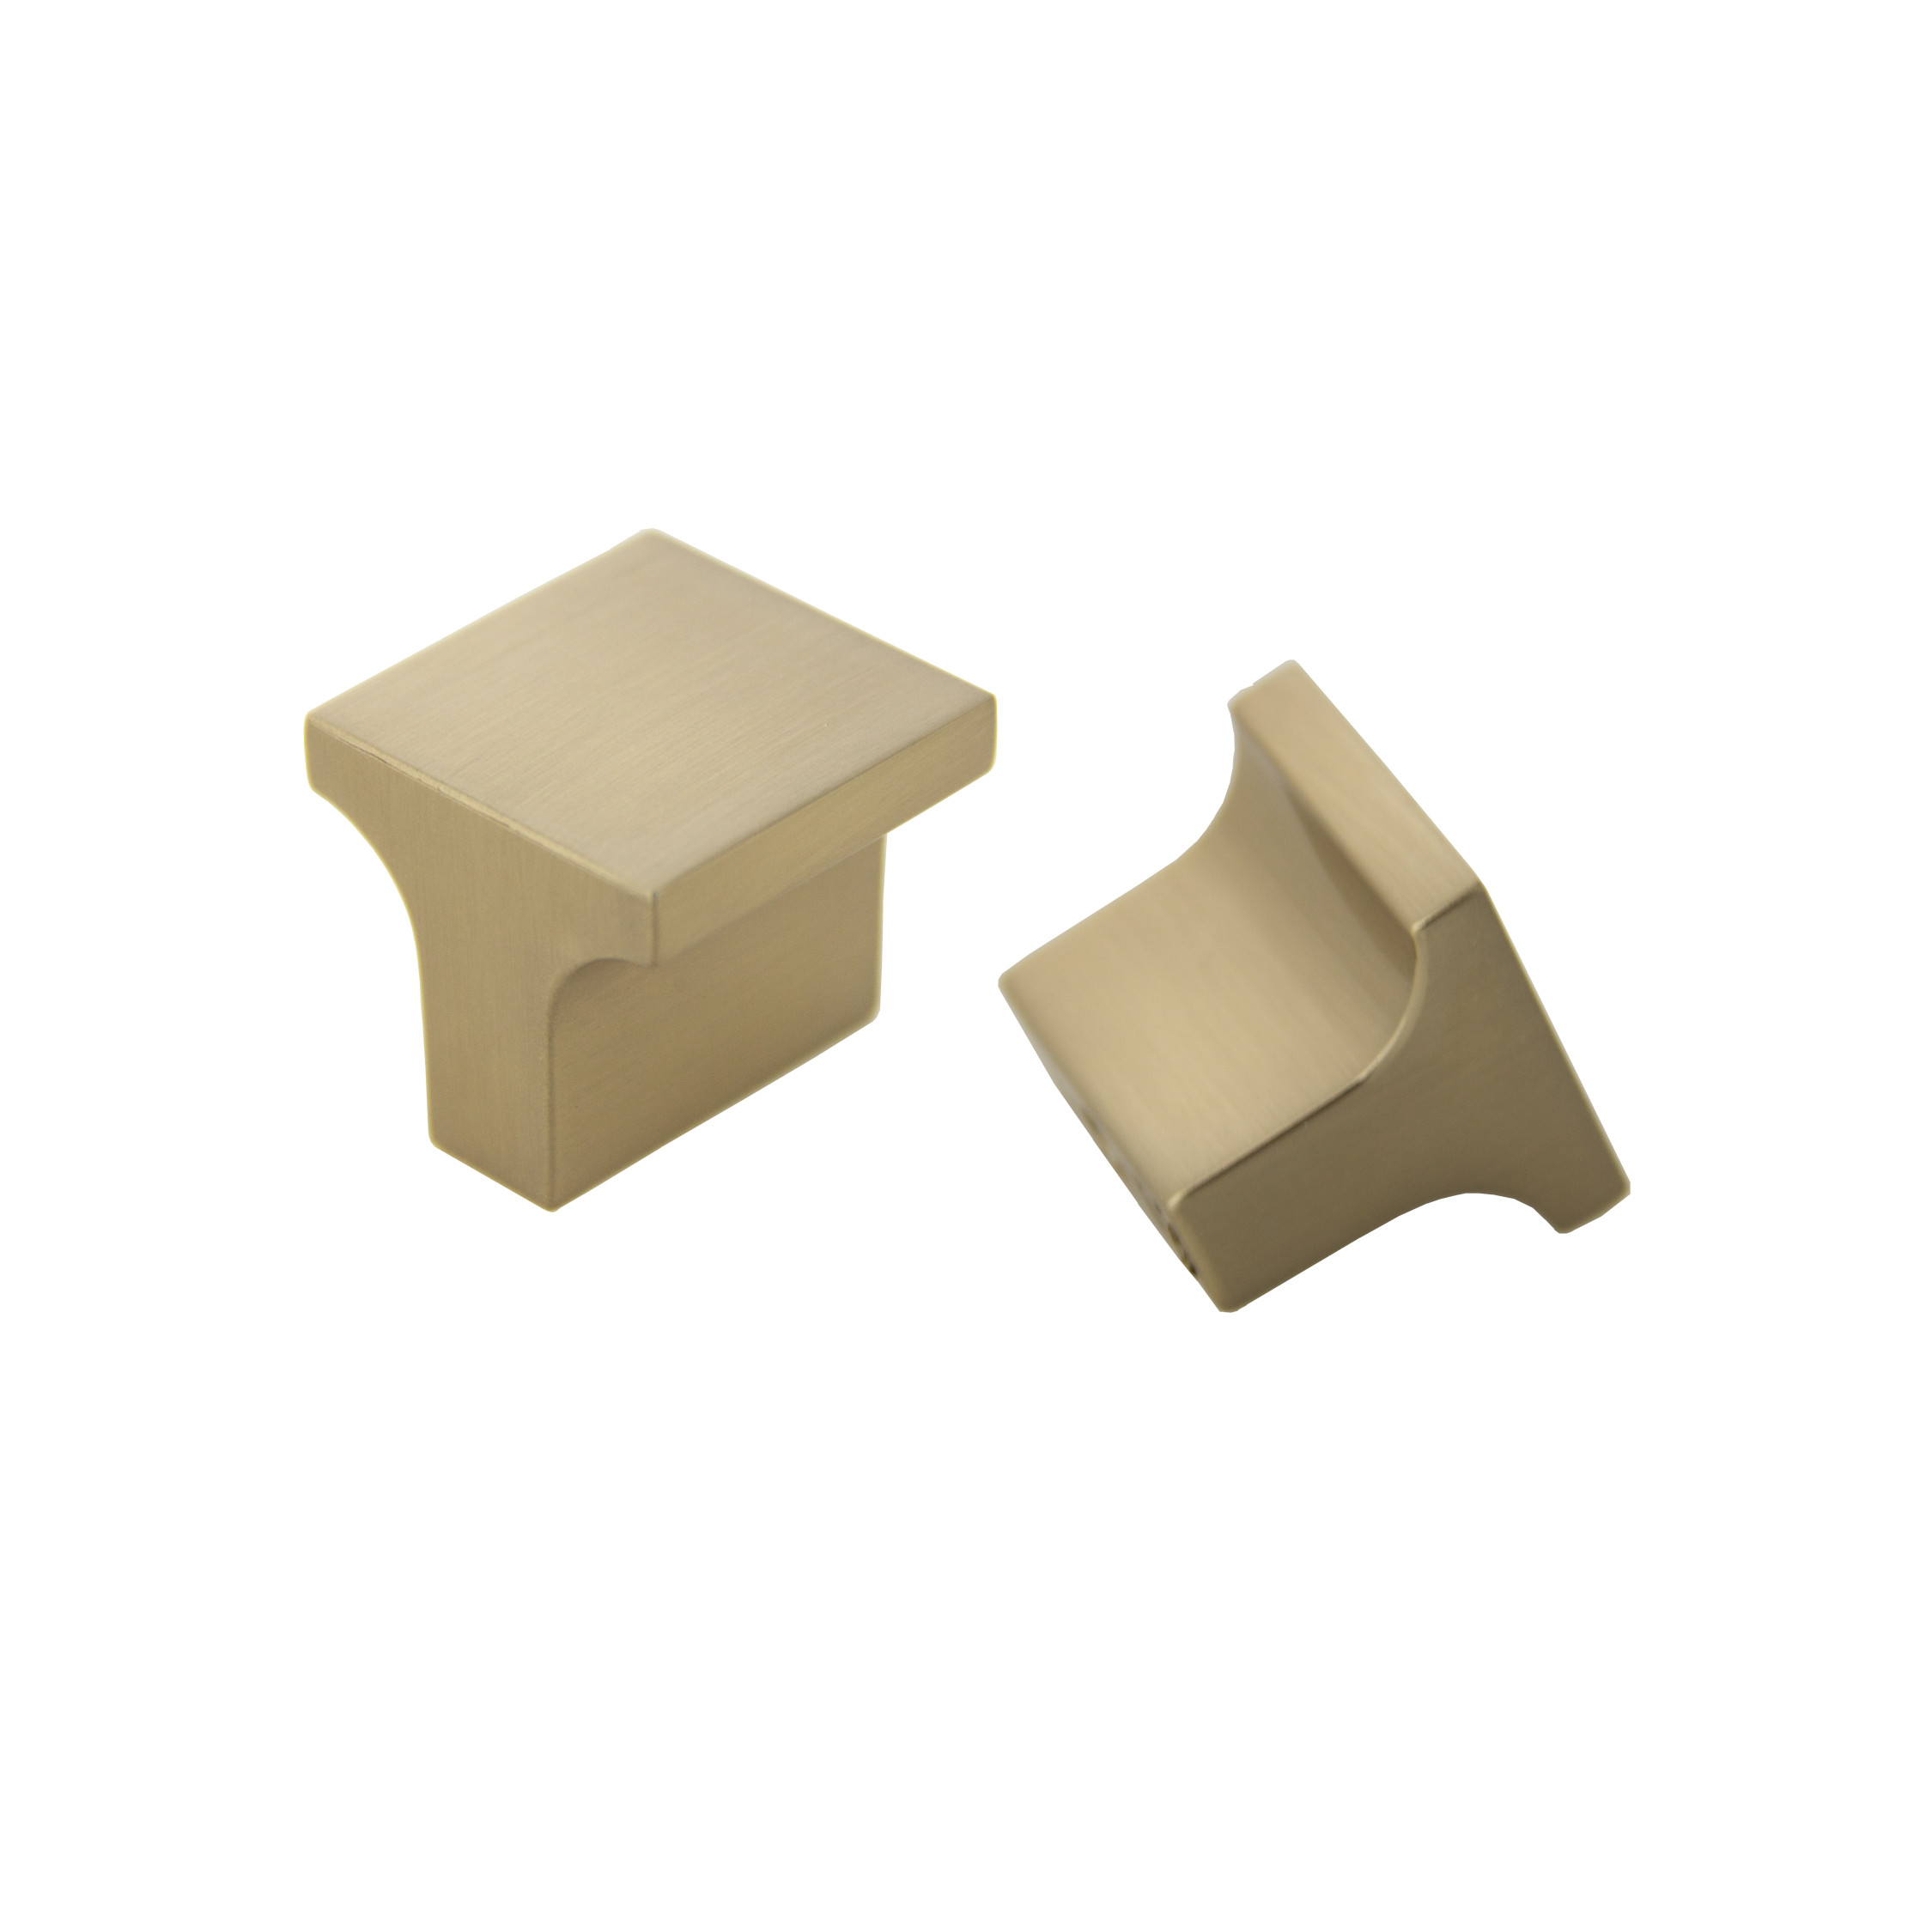 KCD Hardware image for part #DH-K83125RG